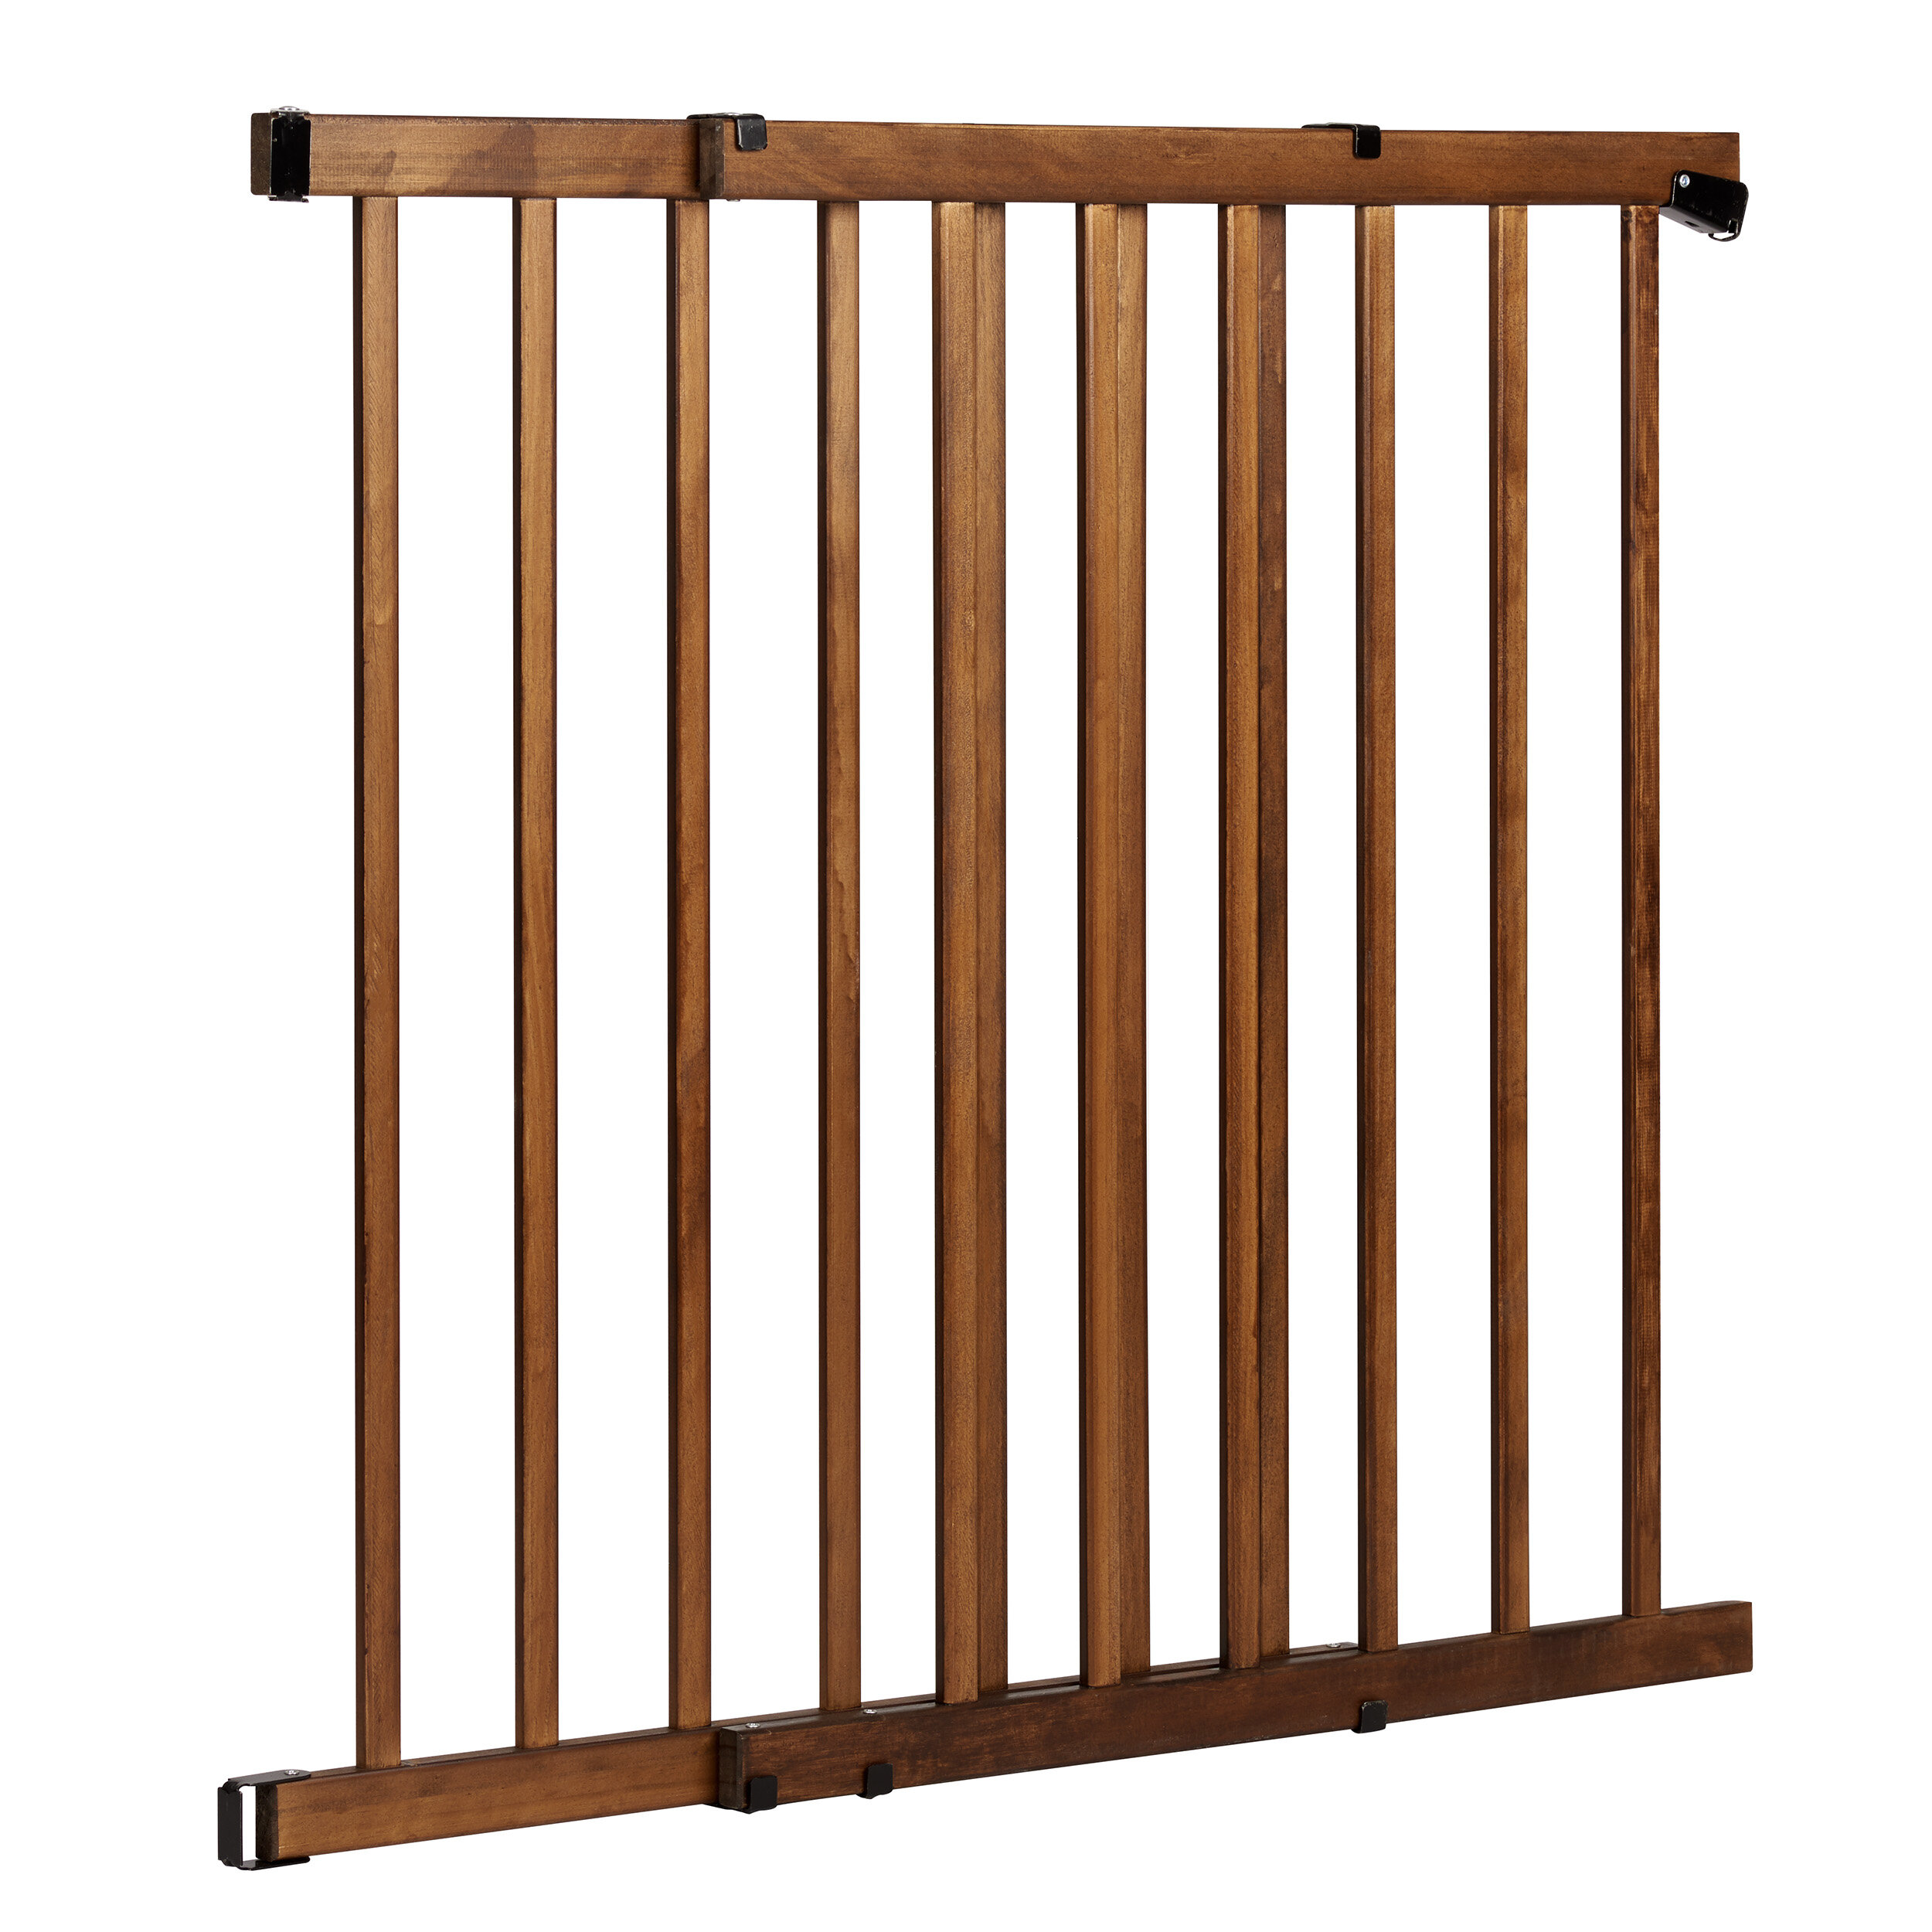 Evenflo Top Of Stair Extra Tall Safety Gate Reviews Wayfair